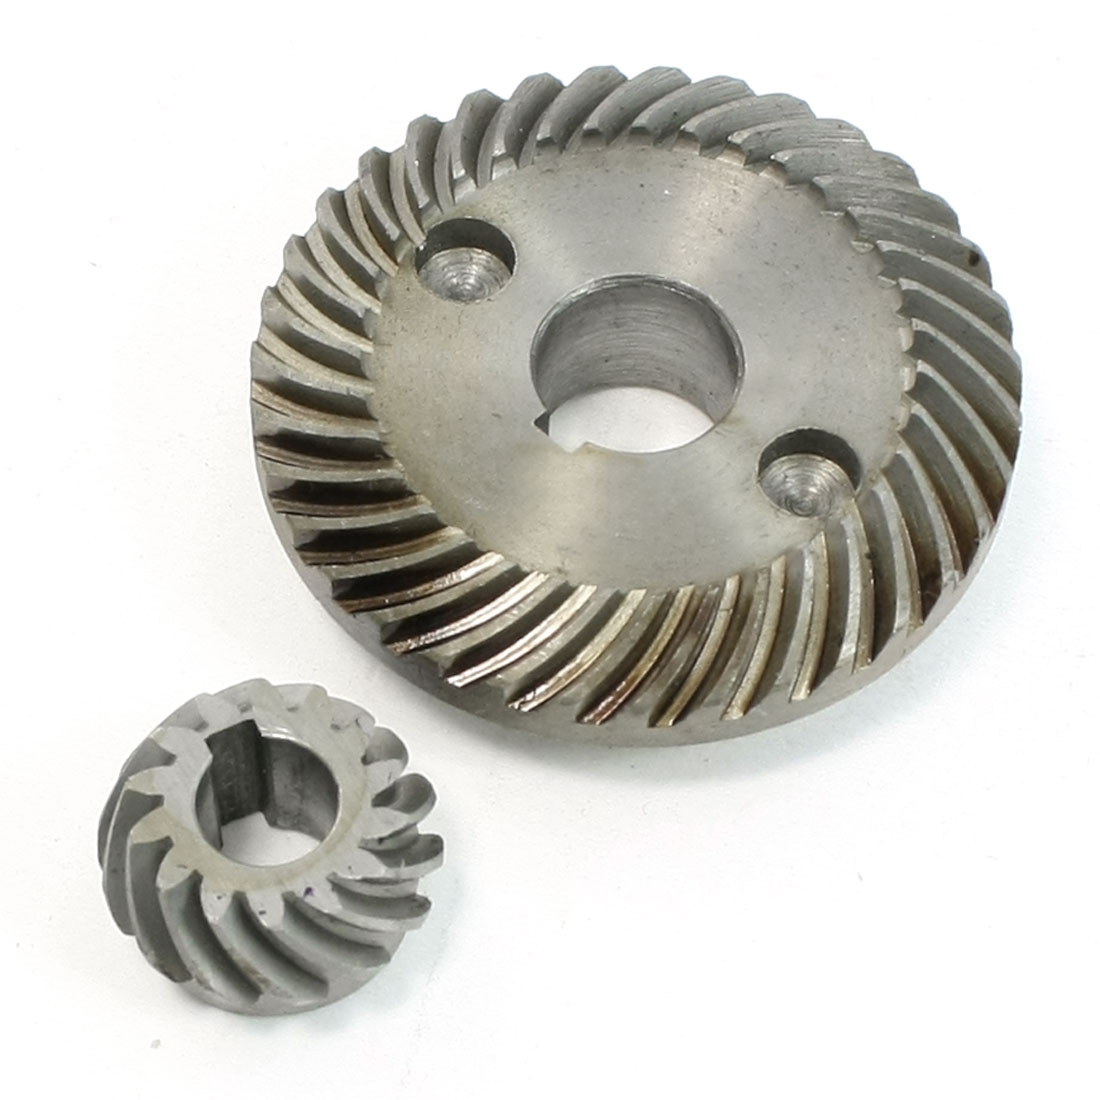 Replacement Slot Hole Design Gear Wheel Set for Makita 9500 Grinder